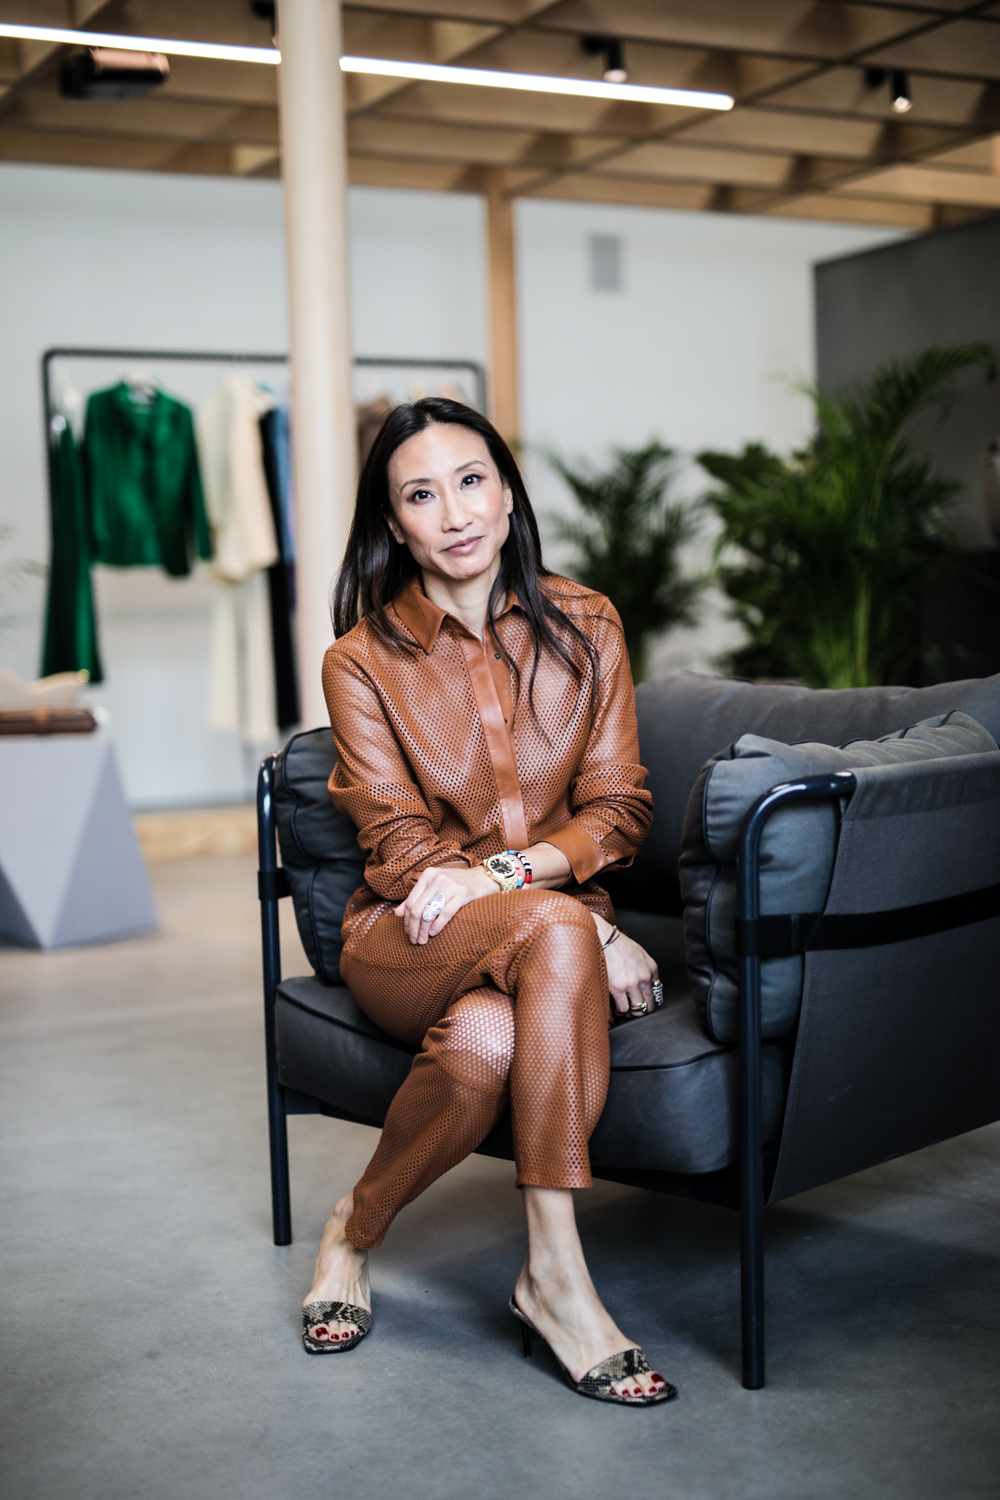 Net-a-porter global buying director Elizabeth von Der Goltz